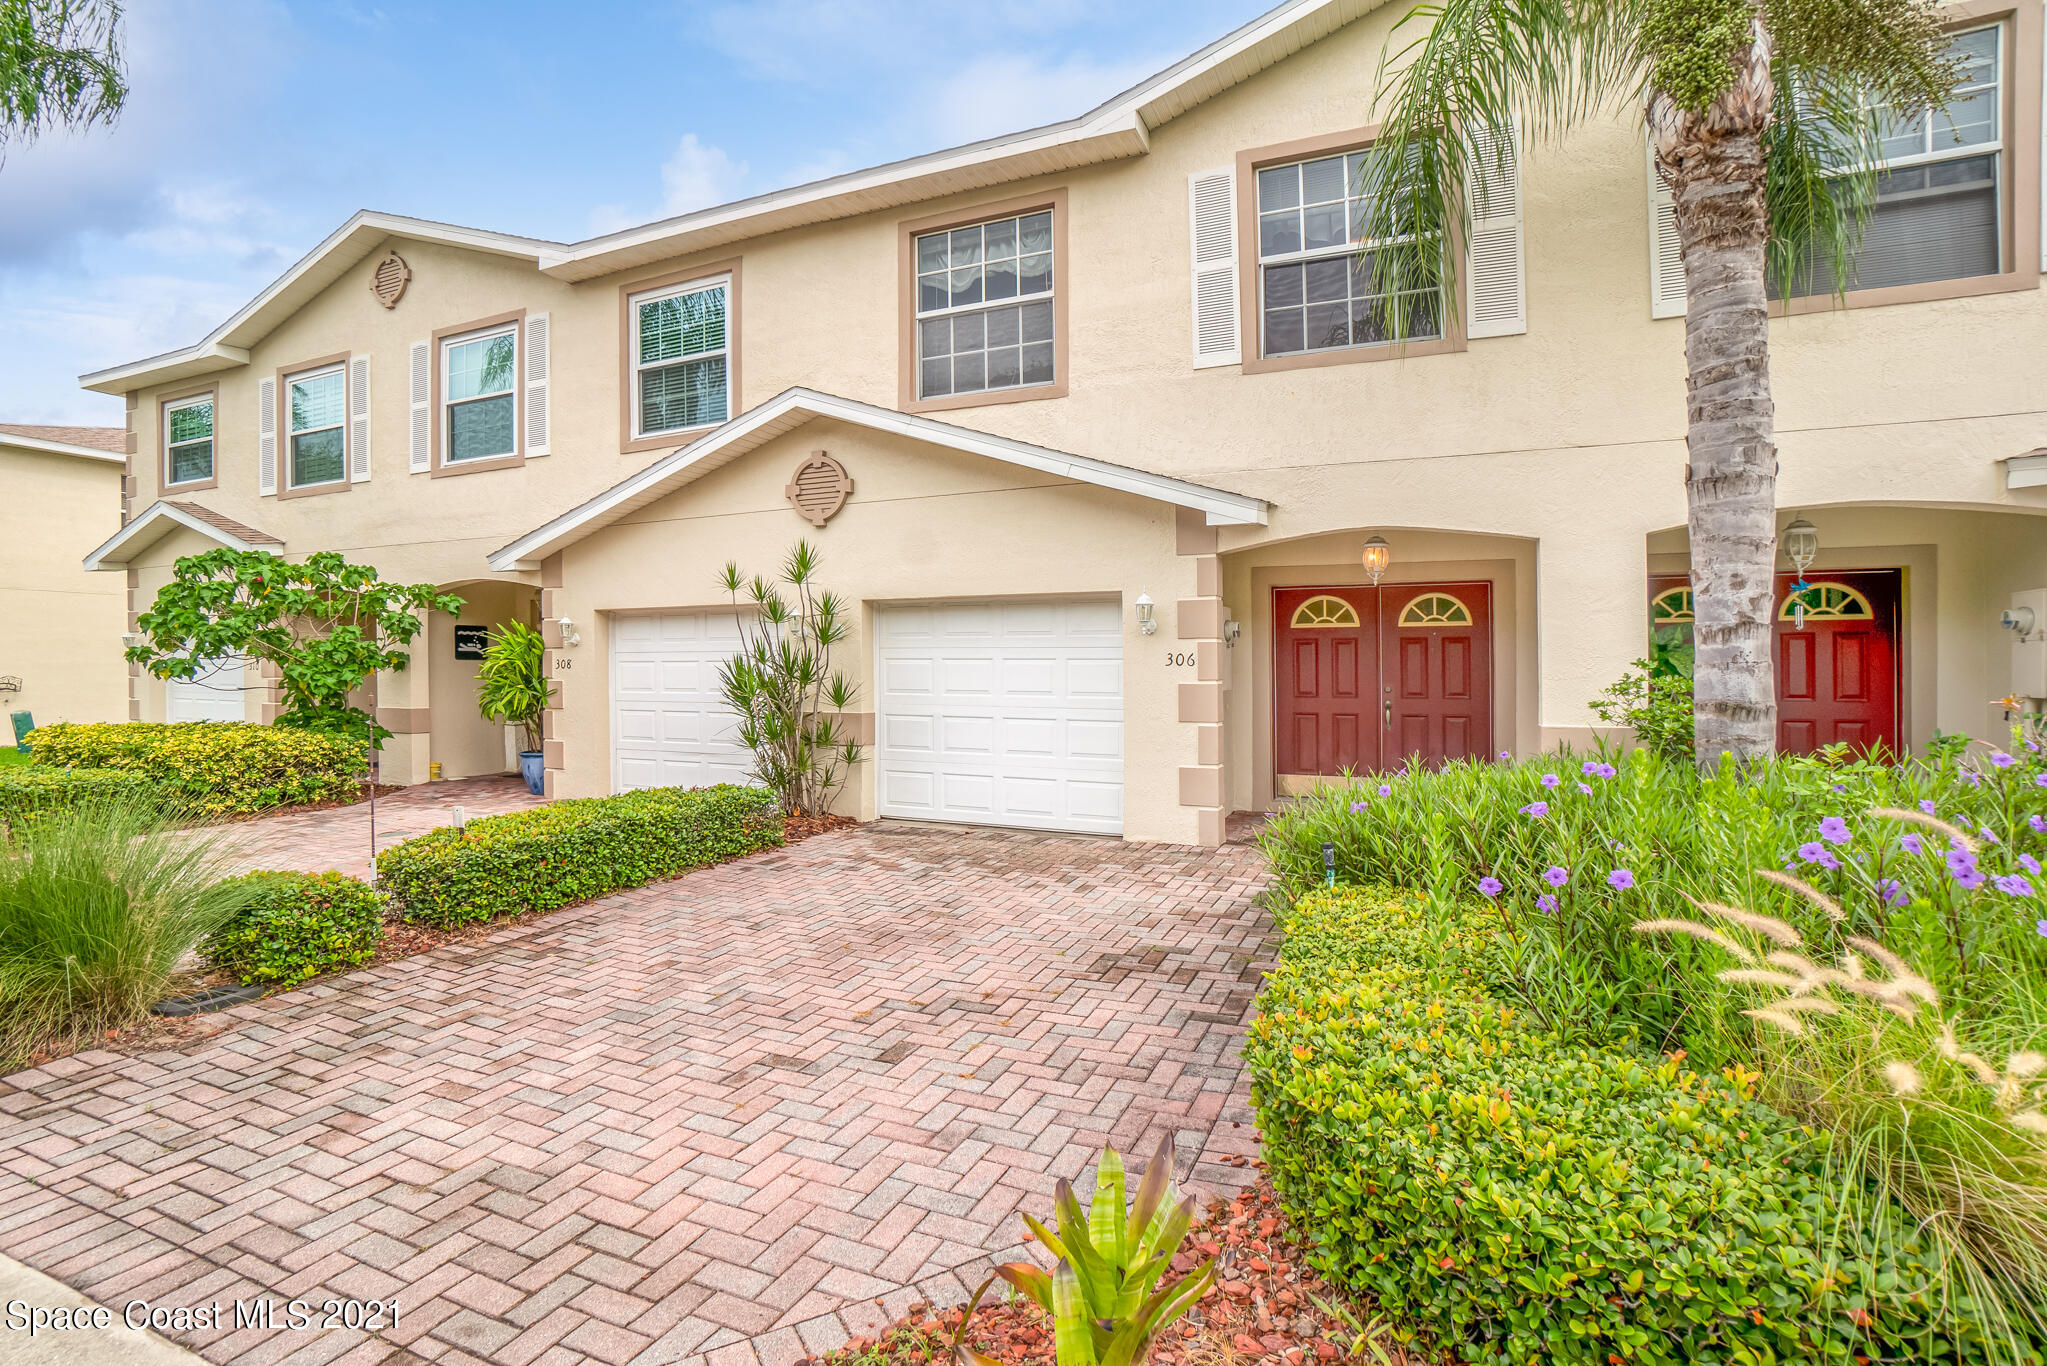 Tucked into a quiet neighborhood that sits next to a nature preserve and with private access to the Banana River, this 3 Bed, 2.5 Bath townhome with 1 car attached garage is the perfect space for a full time residence or vacation home. High ceilings and an open floor plan make for a perfect entertaining setting. Primary suite features a large bathroom with a walk-in shower, tub, double sinks, walk-in closet, & a spacious balcony overlooking the peaceful backyard. Direct river access, you can walk your paddleboard or kayak down the community's boardwalk and drop them in the water or enjoy an afternoon dip in the community pool. Secluded location yet just blocks to the ocean and Port Canaveral. Don't miss this opportunity, call for a showing today!